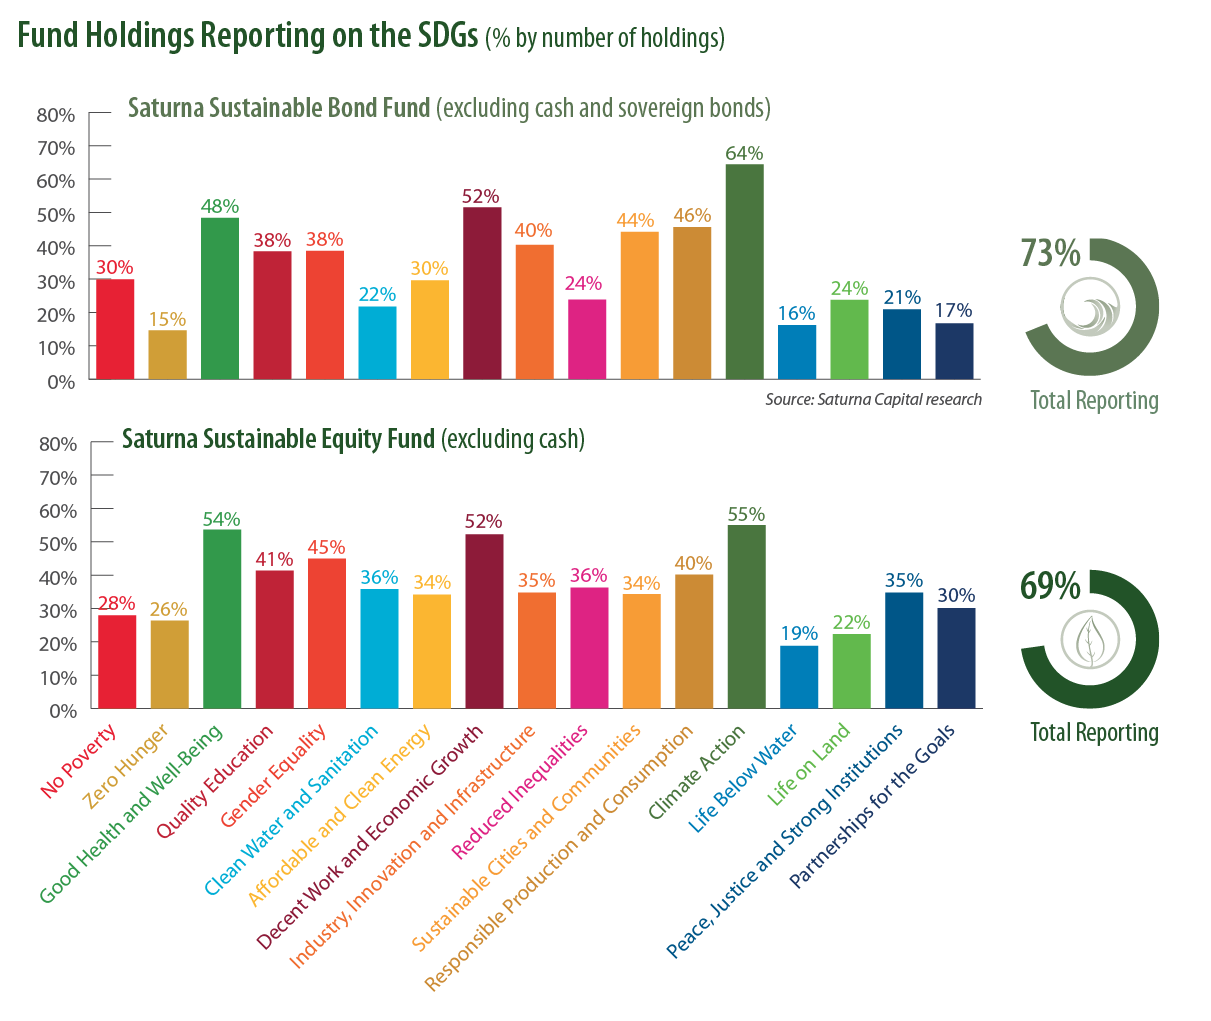 SDG Reporting By Fund